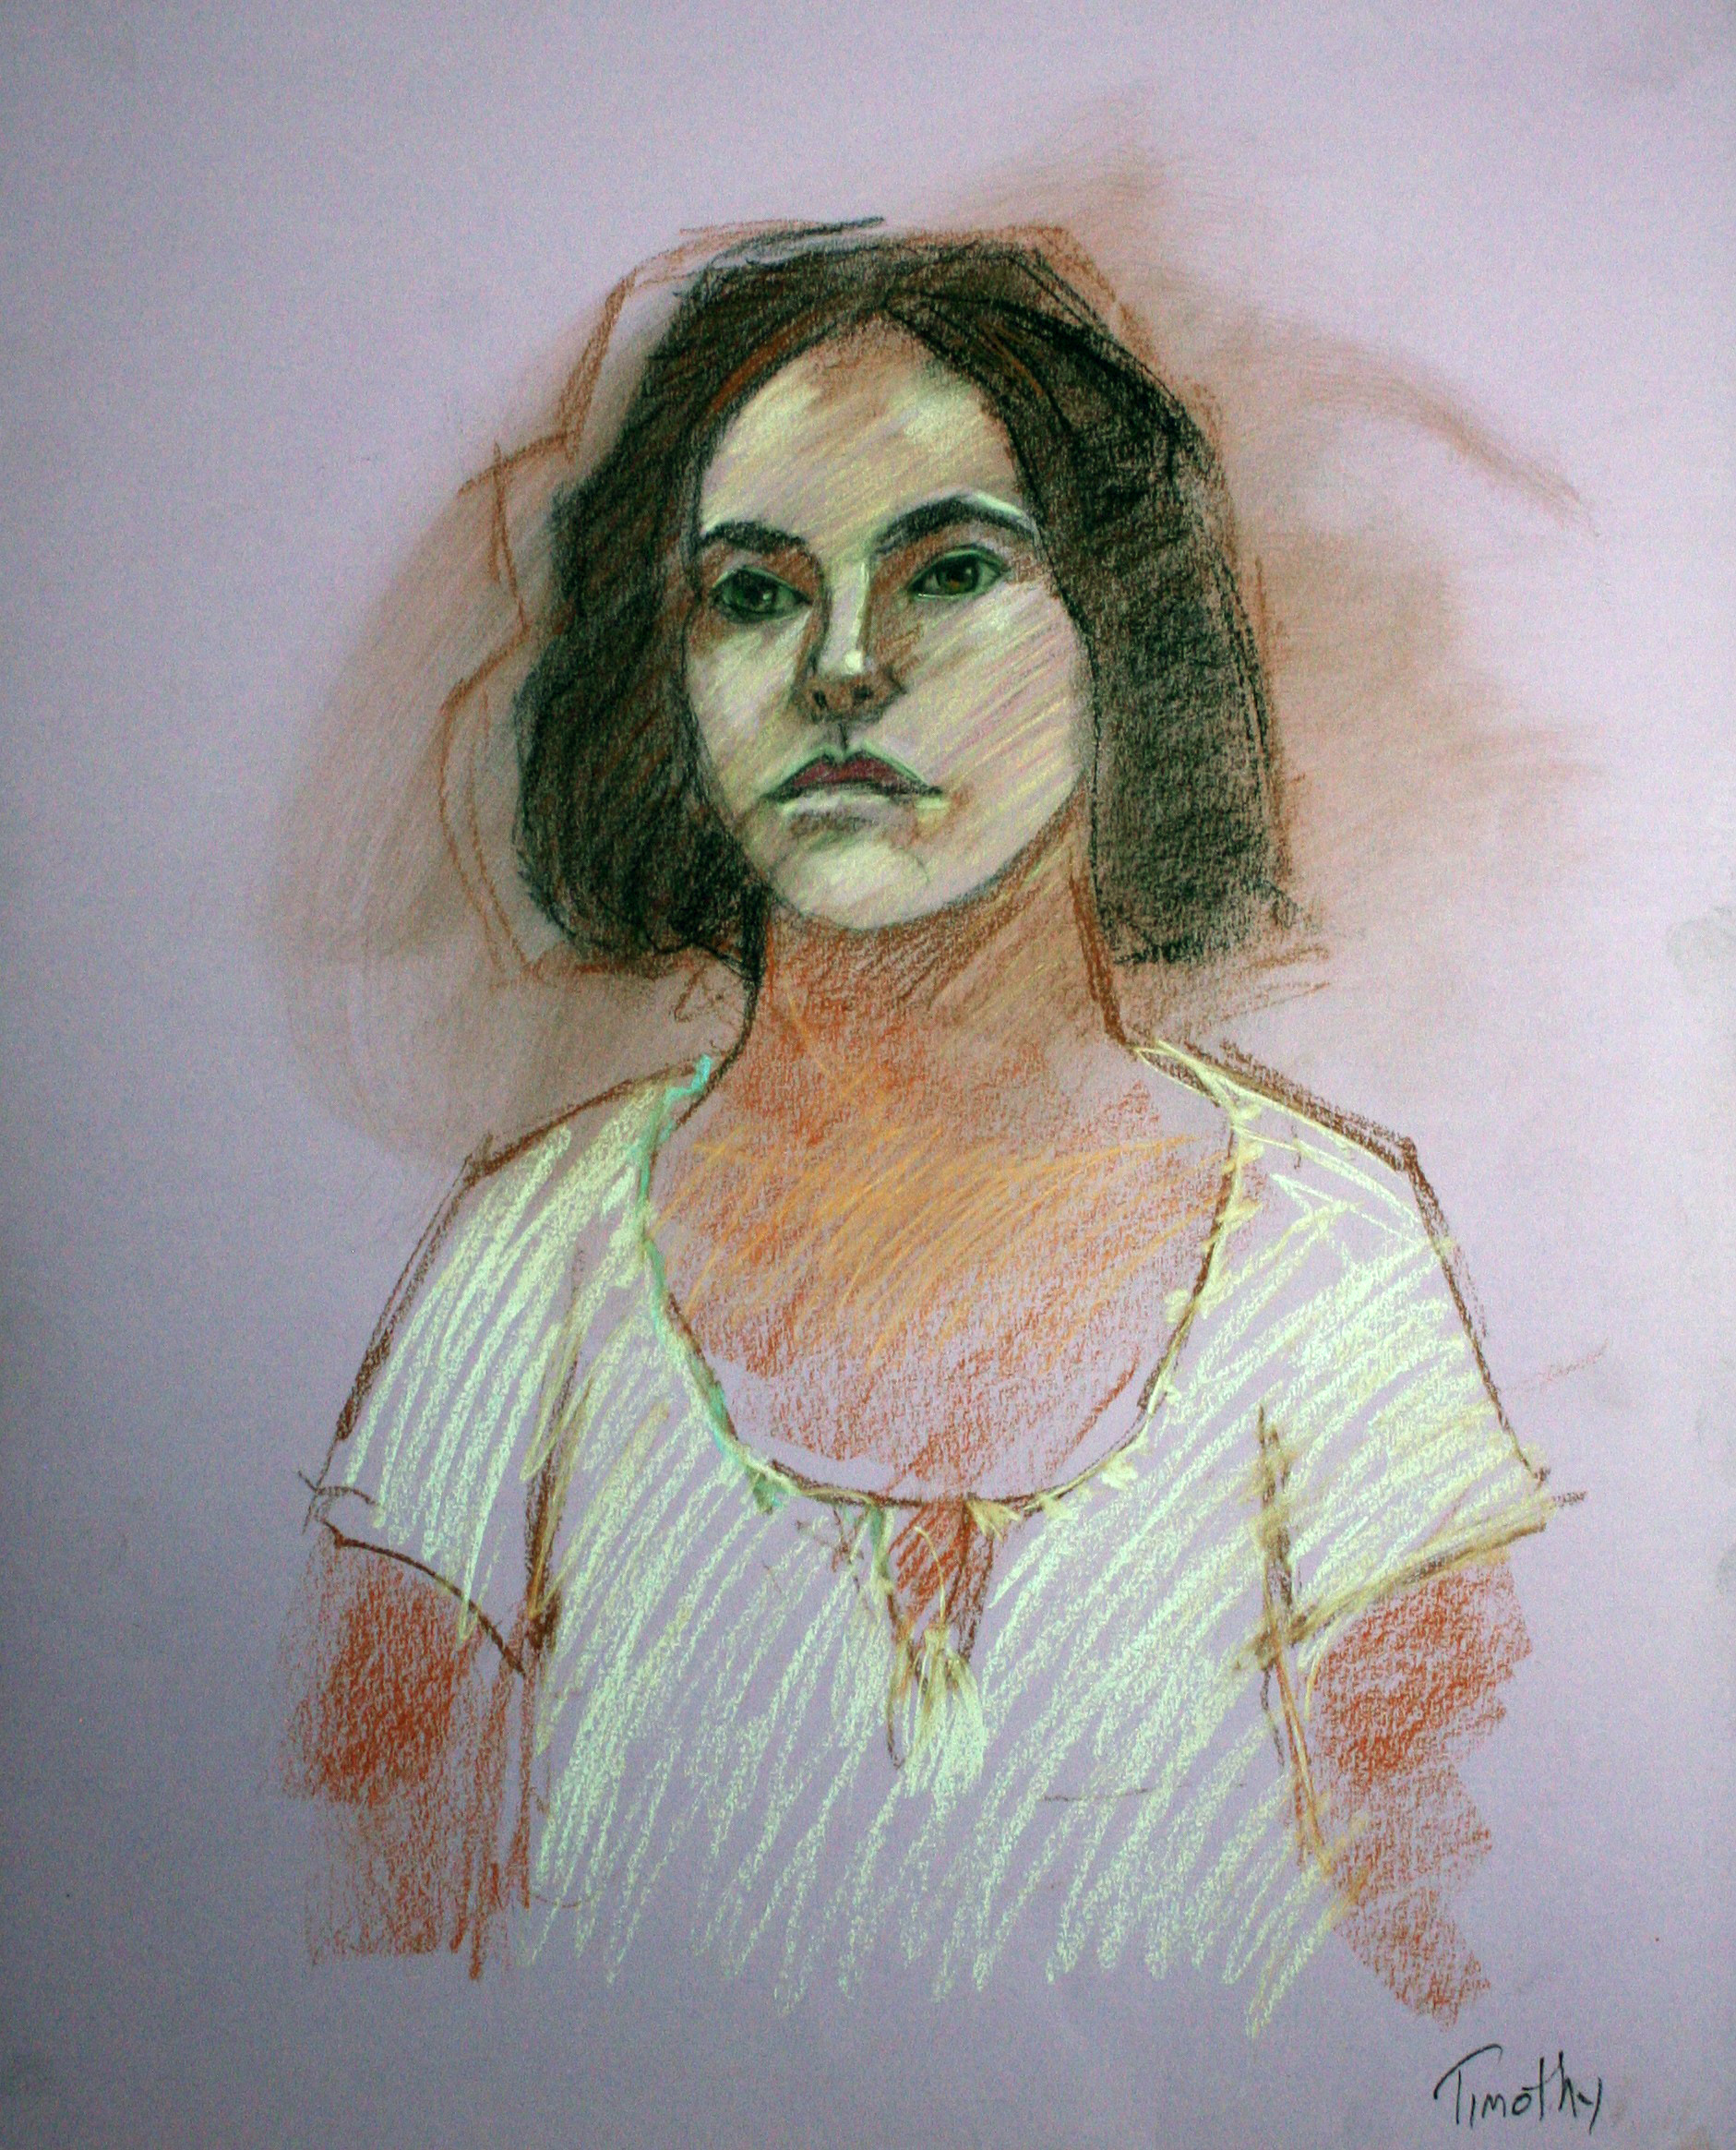 Timothy Herron - Conte, Charcoal and Pastels